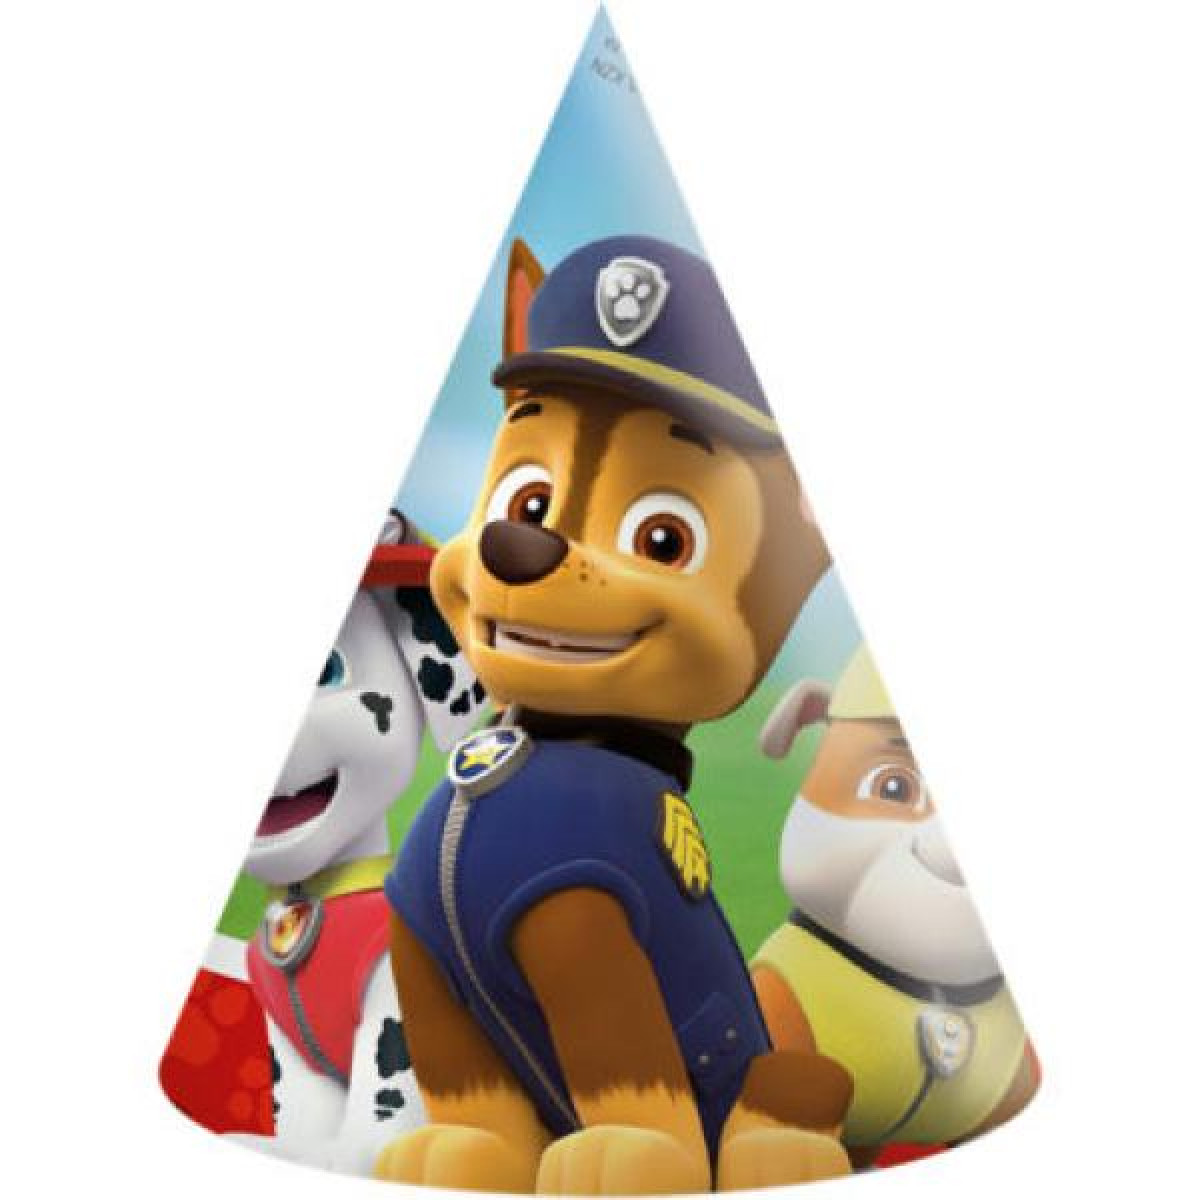 Paw Patrol Hats (6 units in a Pack)